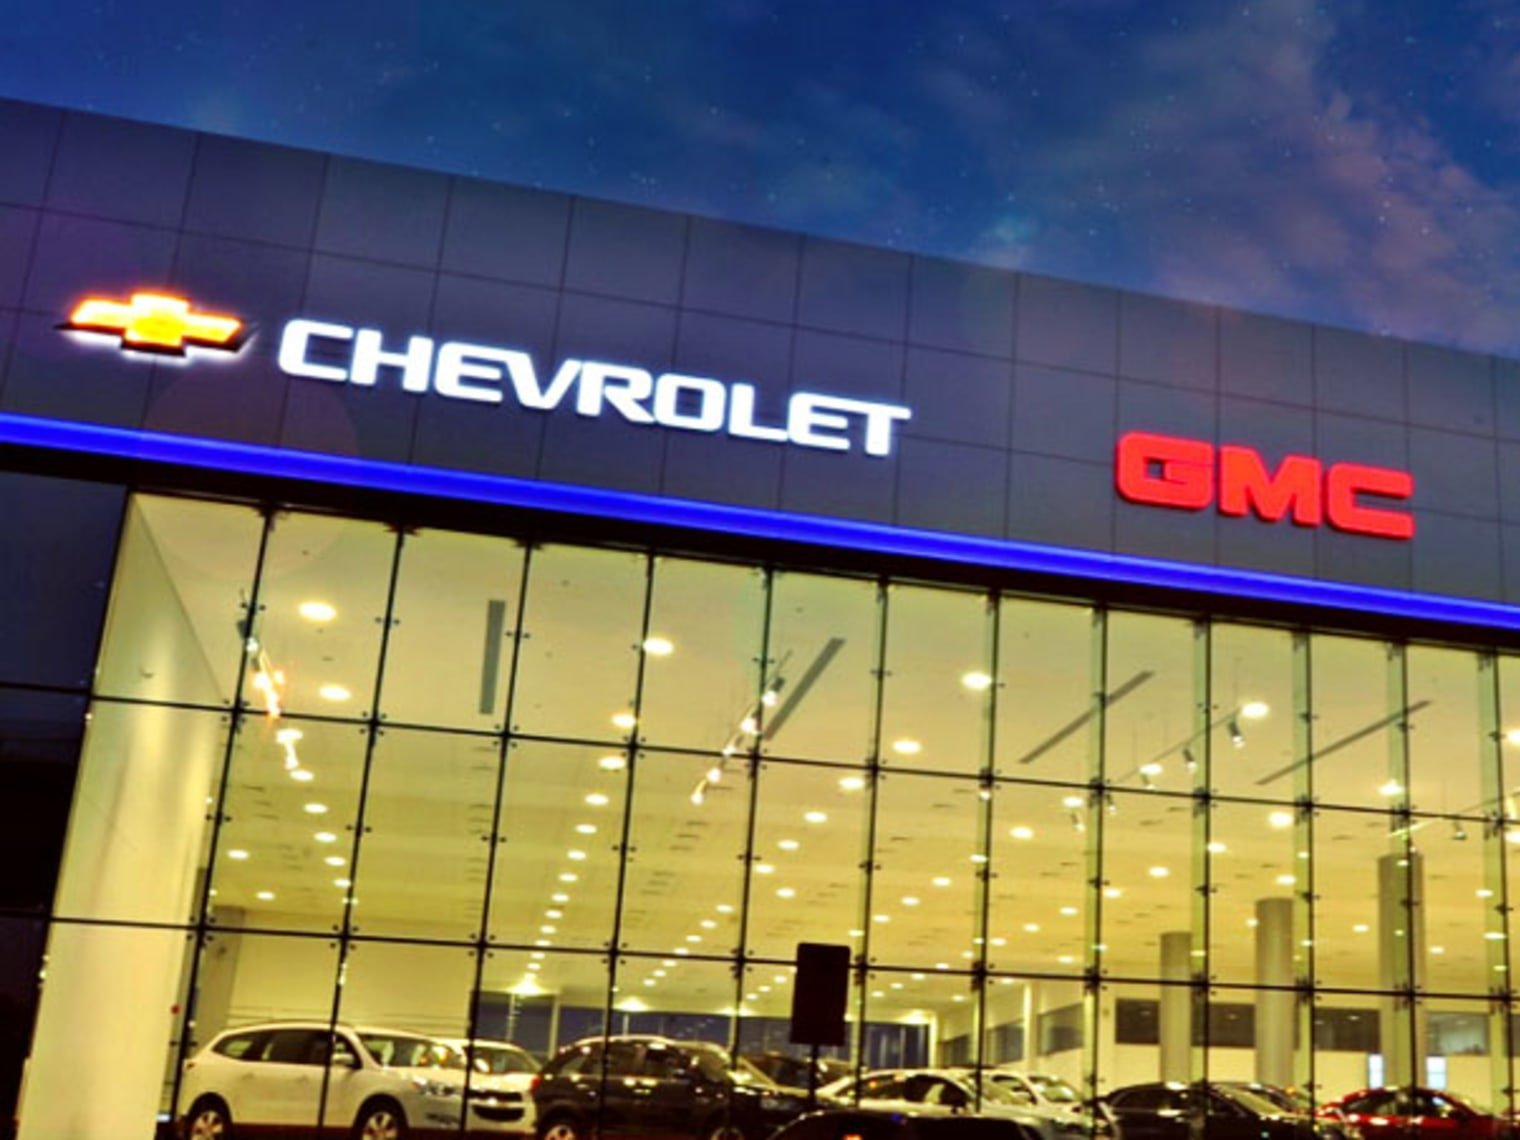 General Motors in UAE has extended their roadside assistance and warranty to all customers to avoid any non-vital servicing trips during this time.